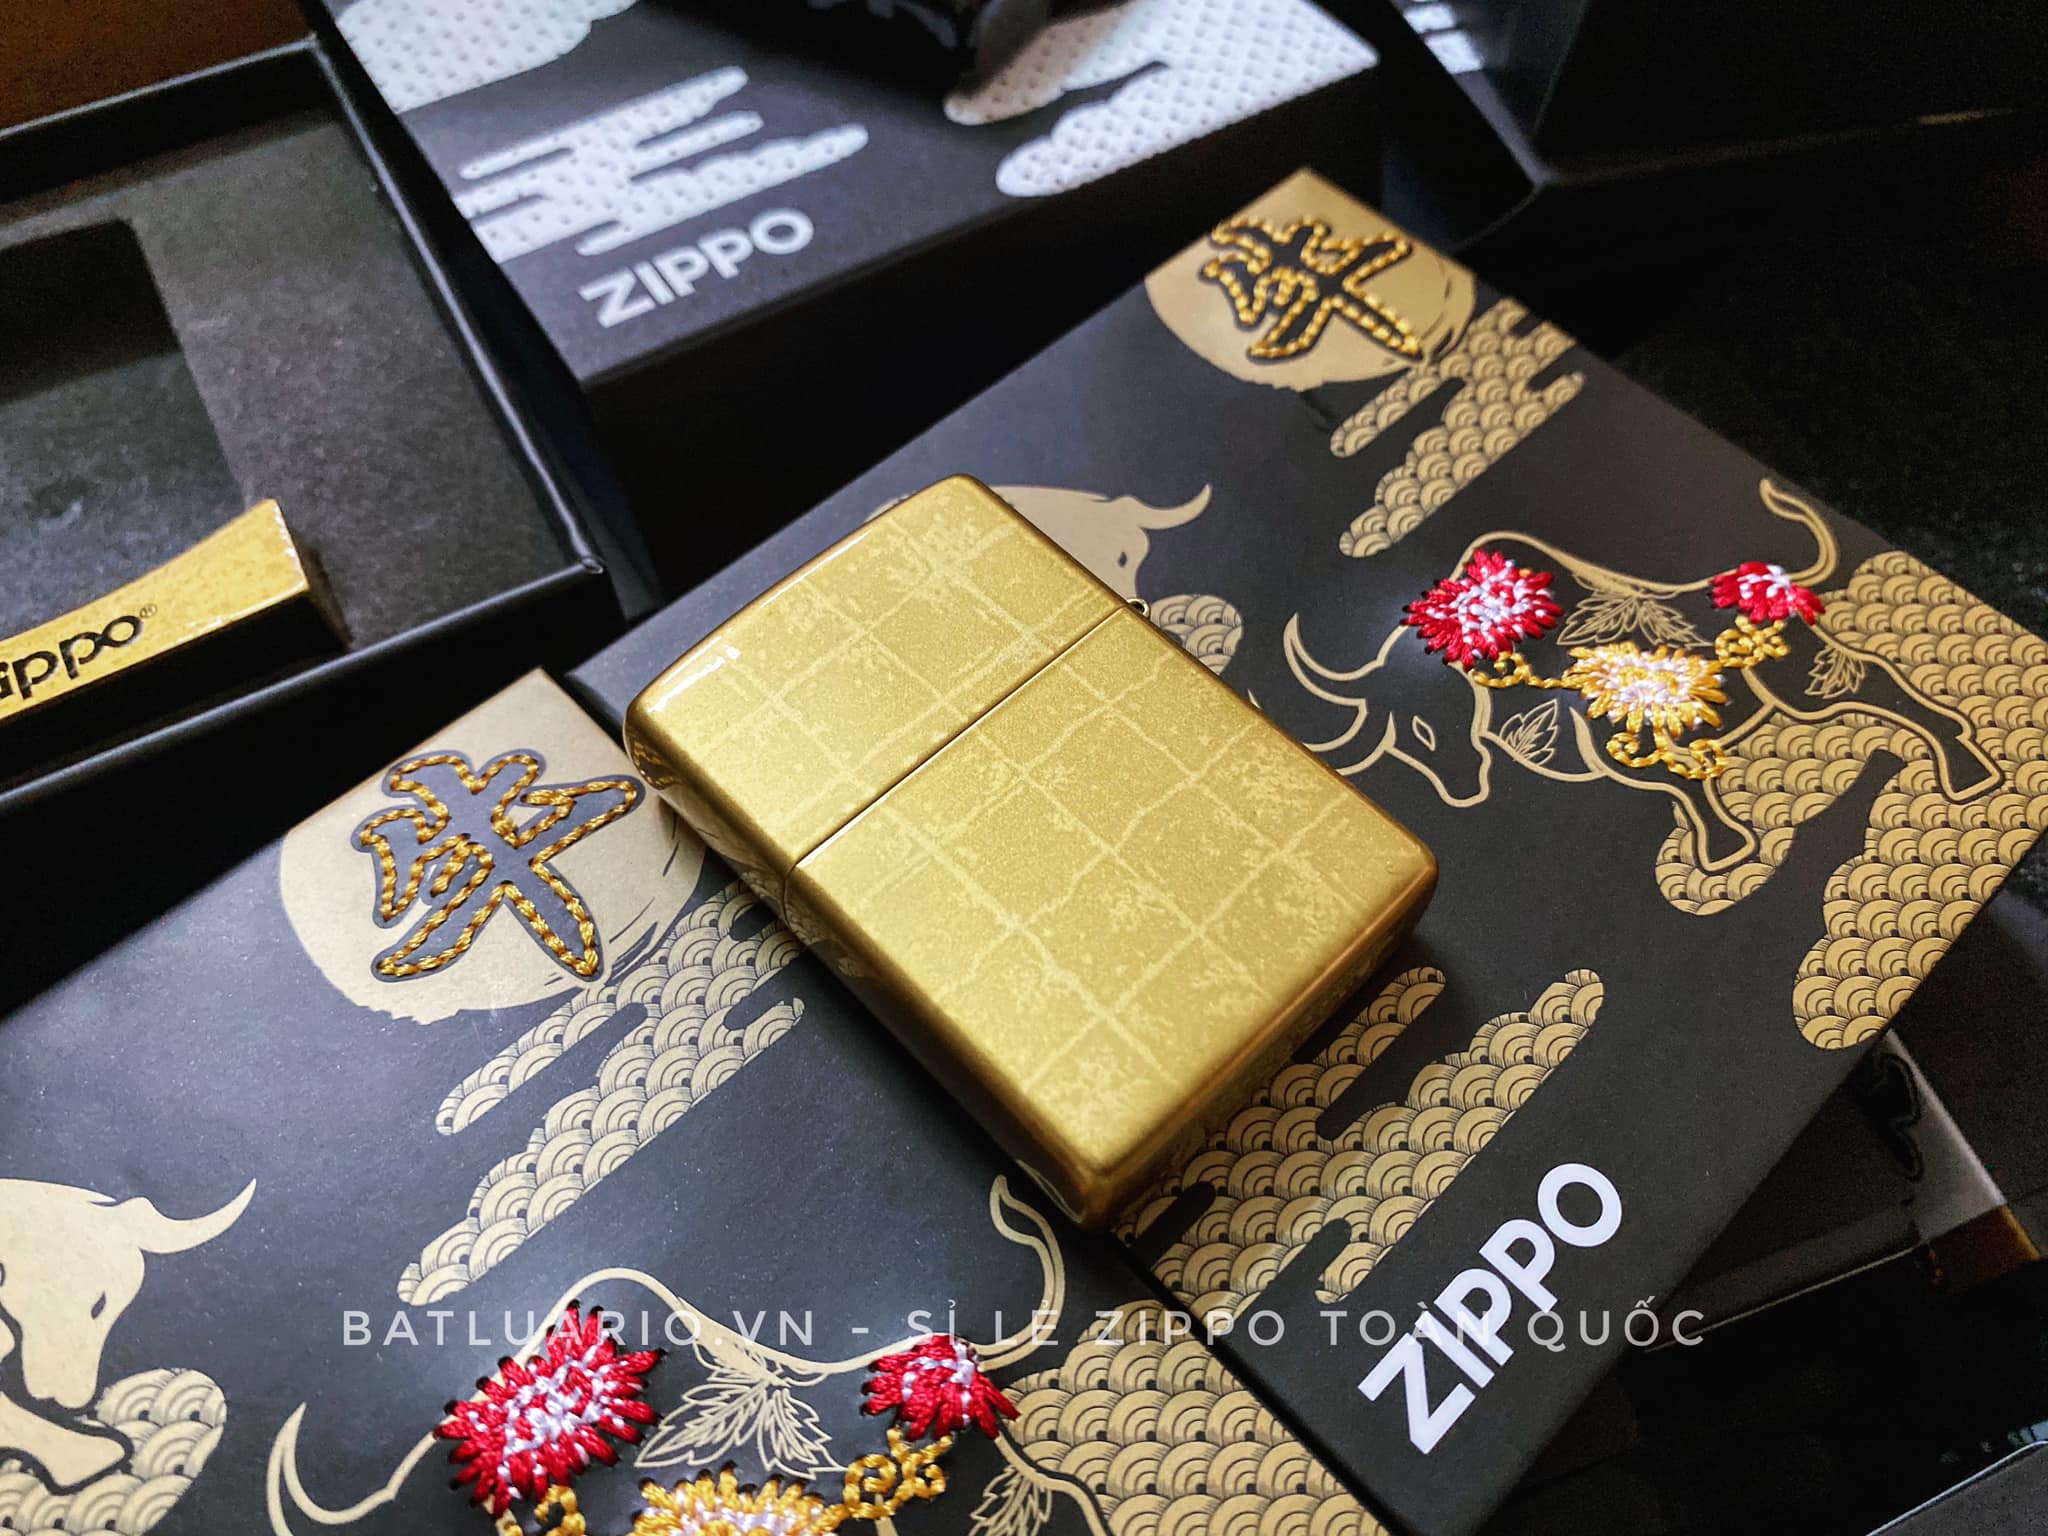 Zippo Year Of The Ox Gold Asia Limited Edition - Zippo CZA-2-18A 14